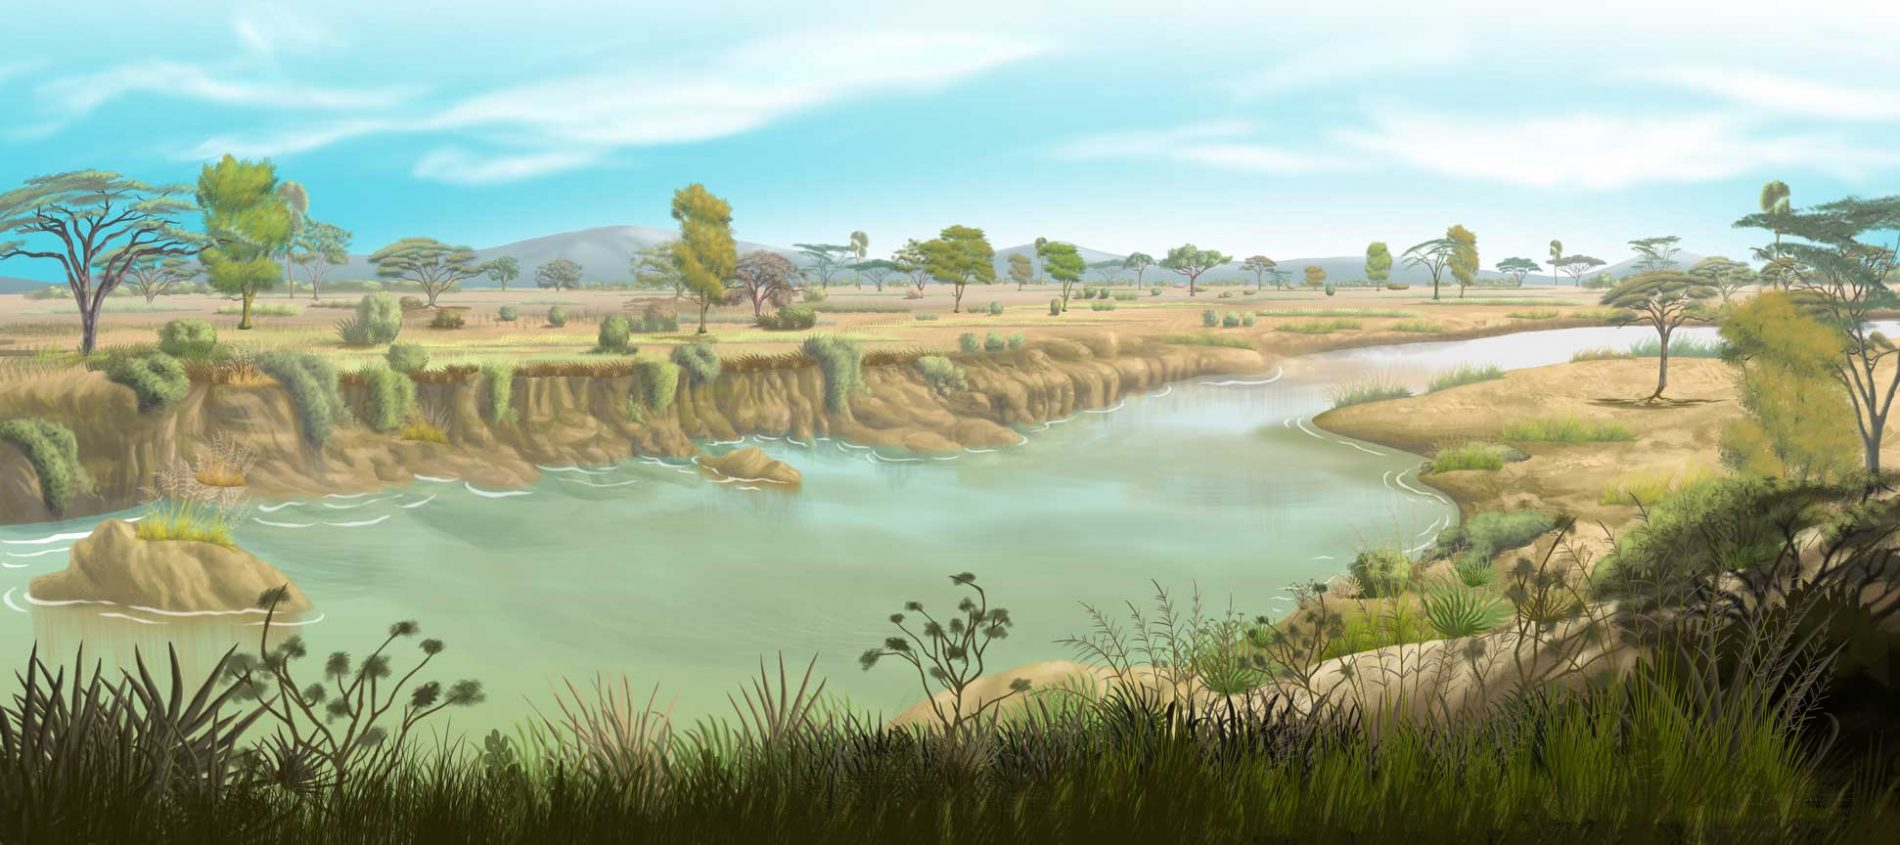 SE111_Layout_EXT_RiverOverlook_Establishing_093017_1145